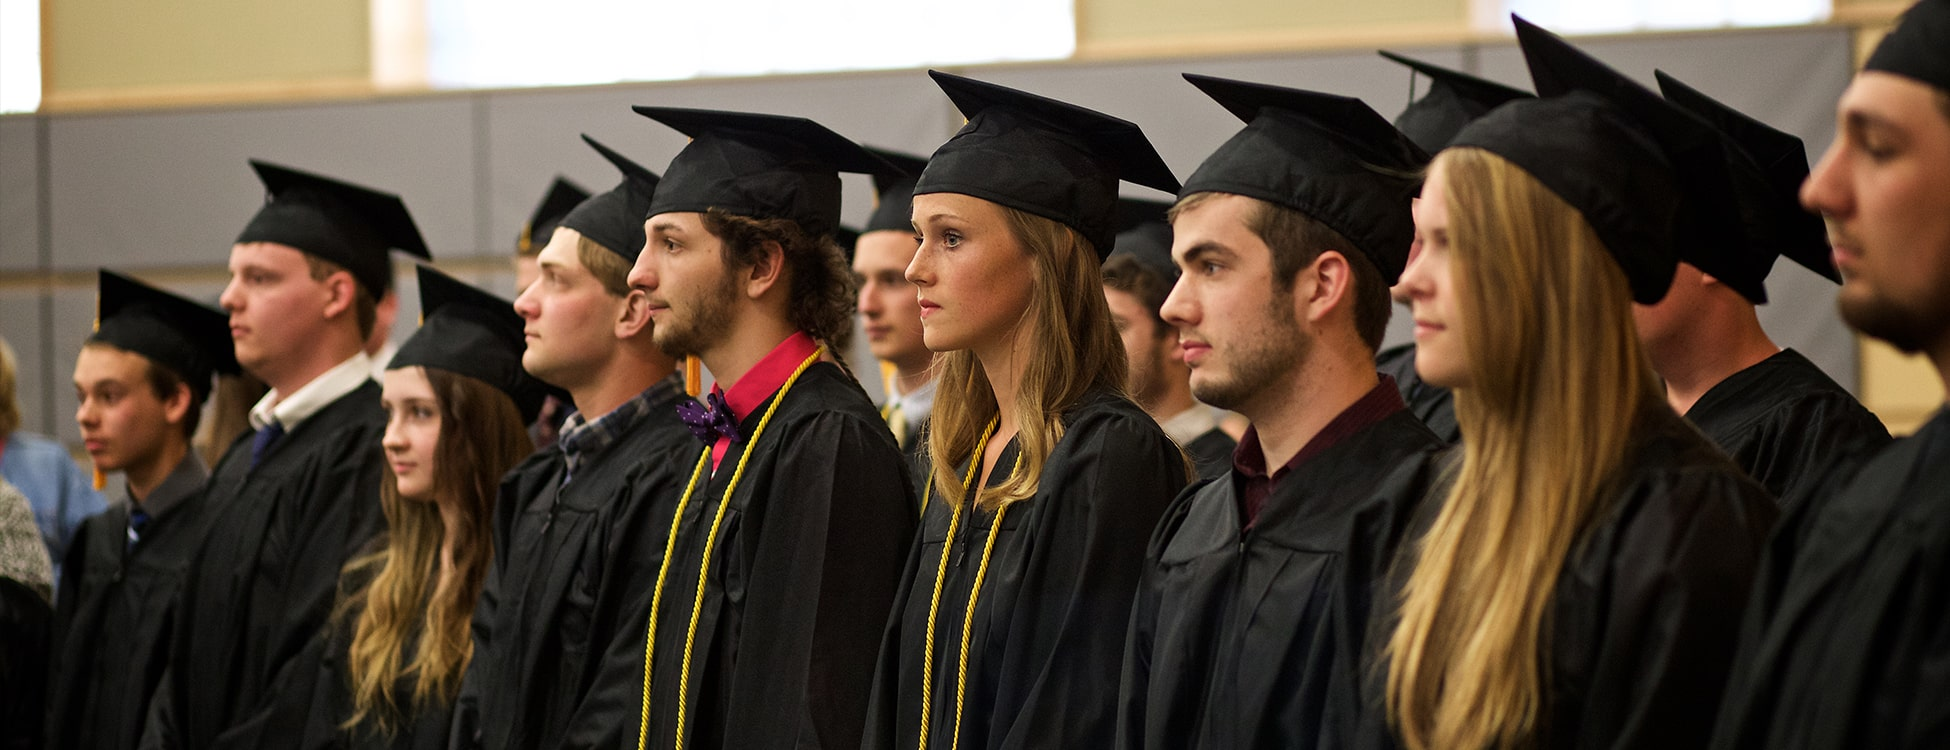 Vermont Academy of Science and Technology graduation, commencement, Randolph Center campus